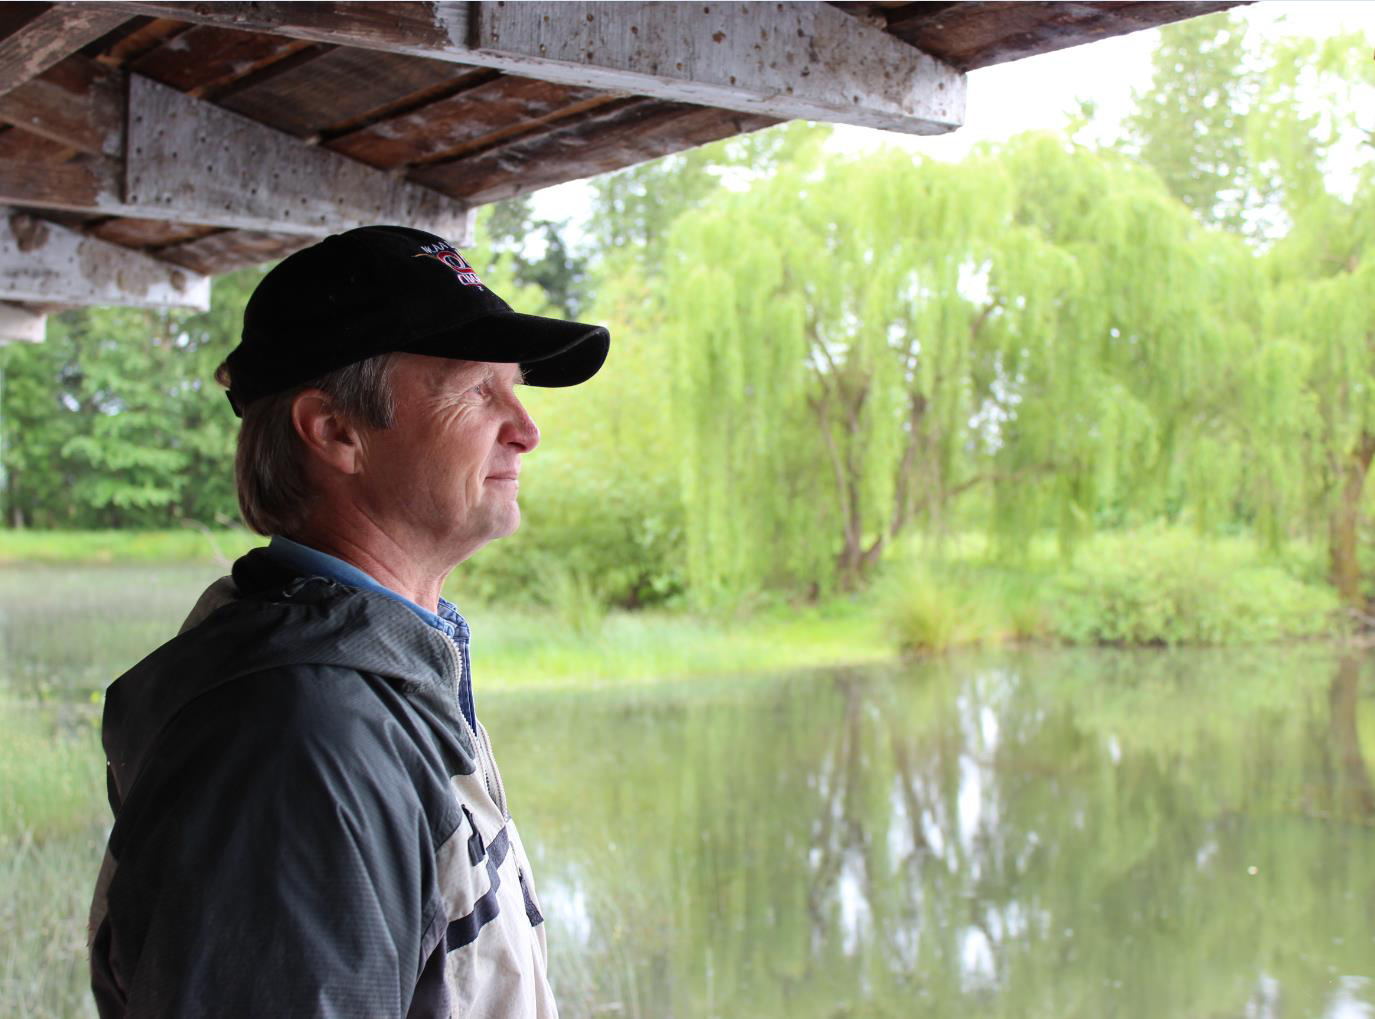 Oregon landowner Dave Budeau said he dreamed of protecting wetlands. An NRCS-led conservation partnership helped Budeau restore and enhance these wetlands, providing habitat for native fish and birds.